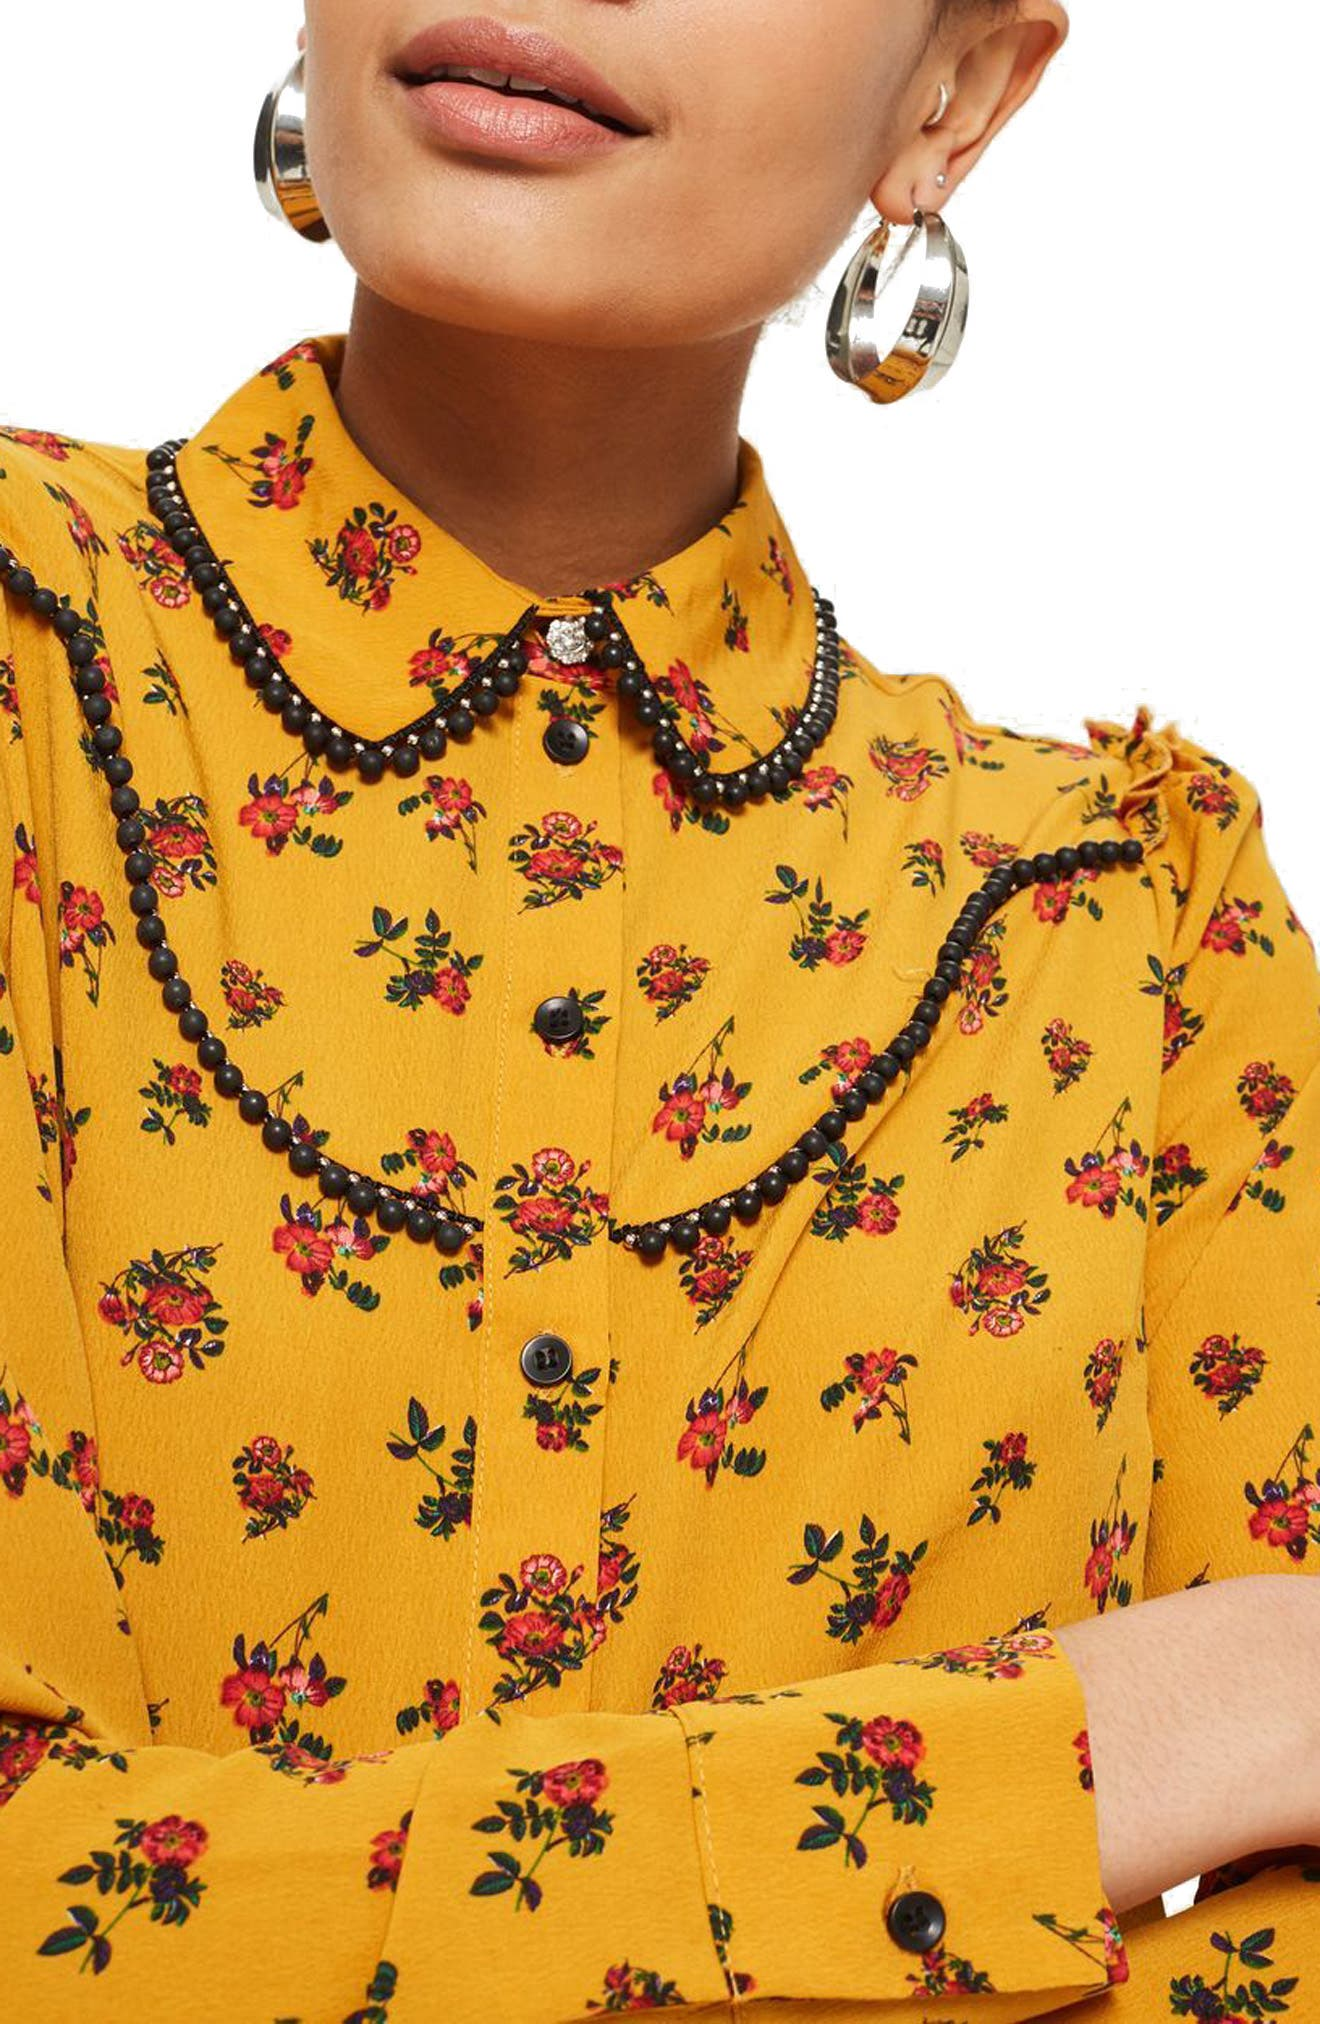 Rodeo Floral Retro Shirt,                             Alternate thumbnail 3, color,                             701